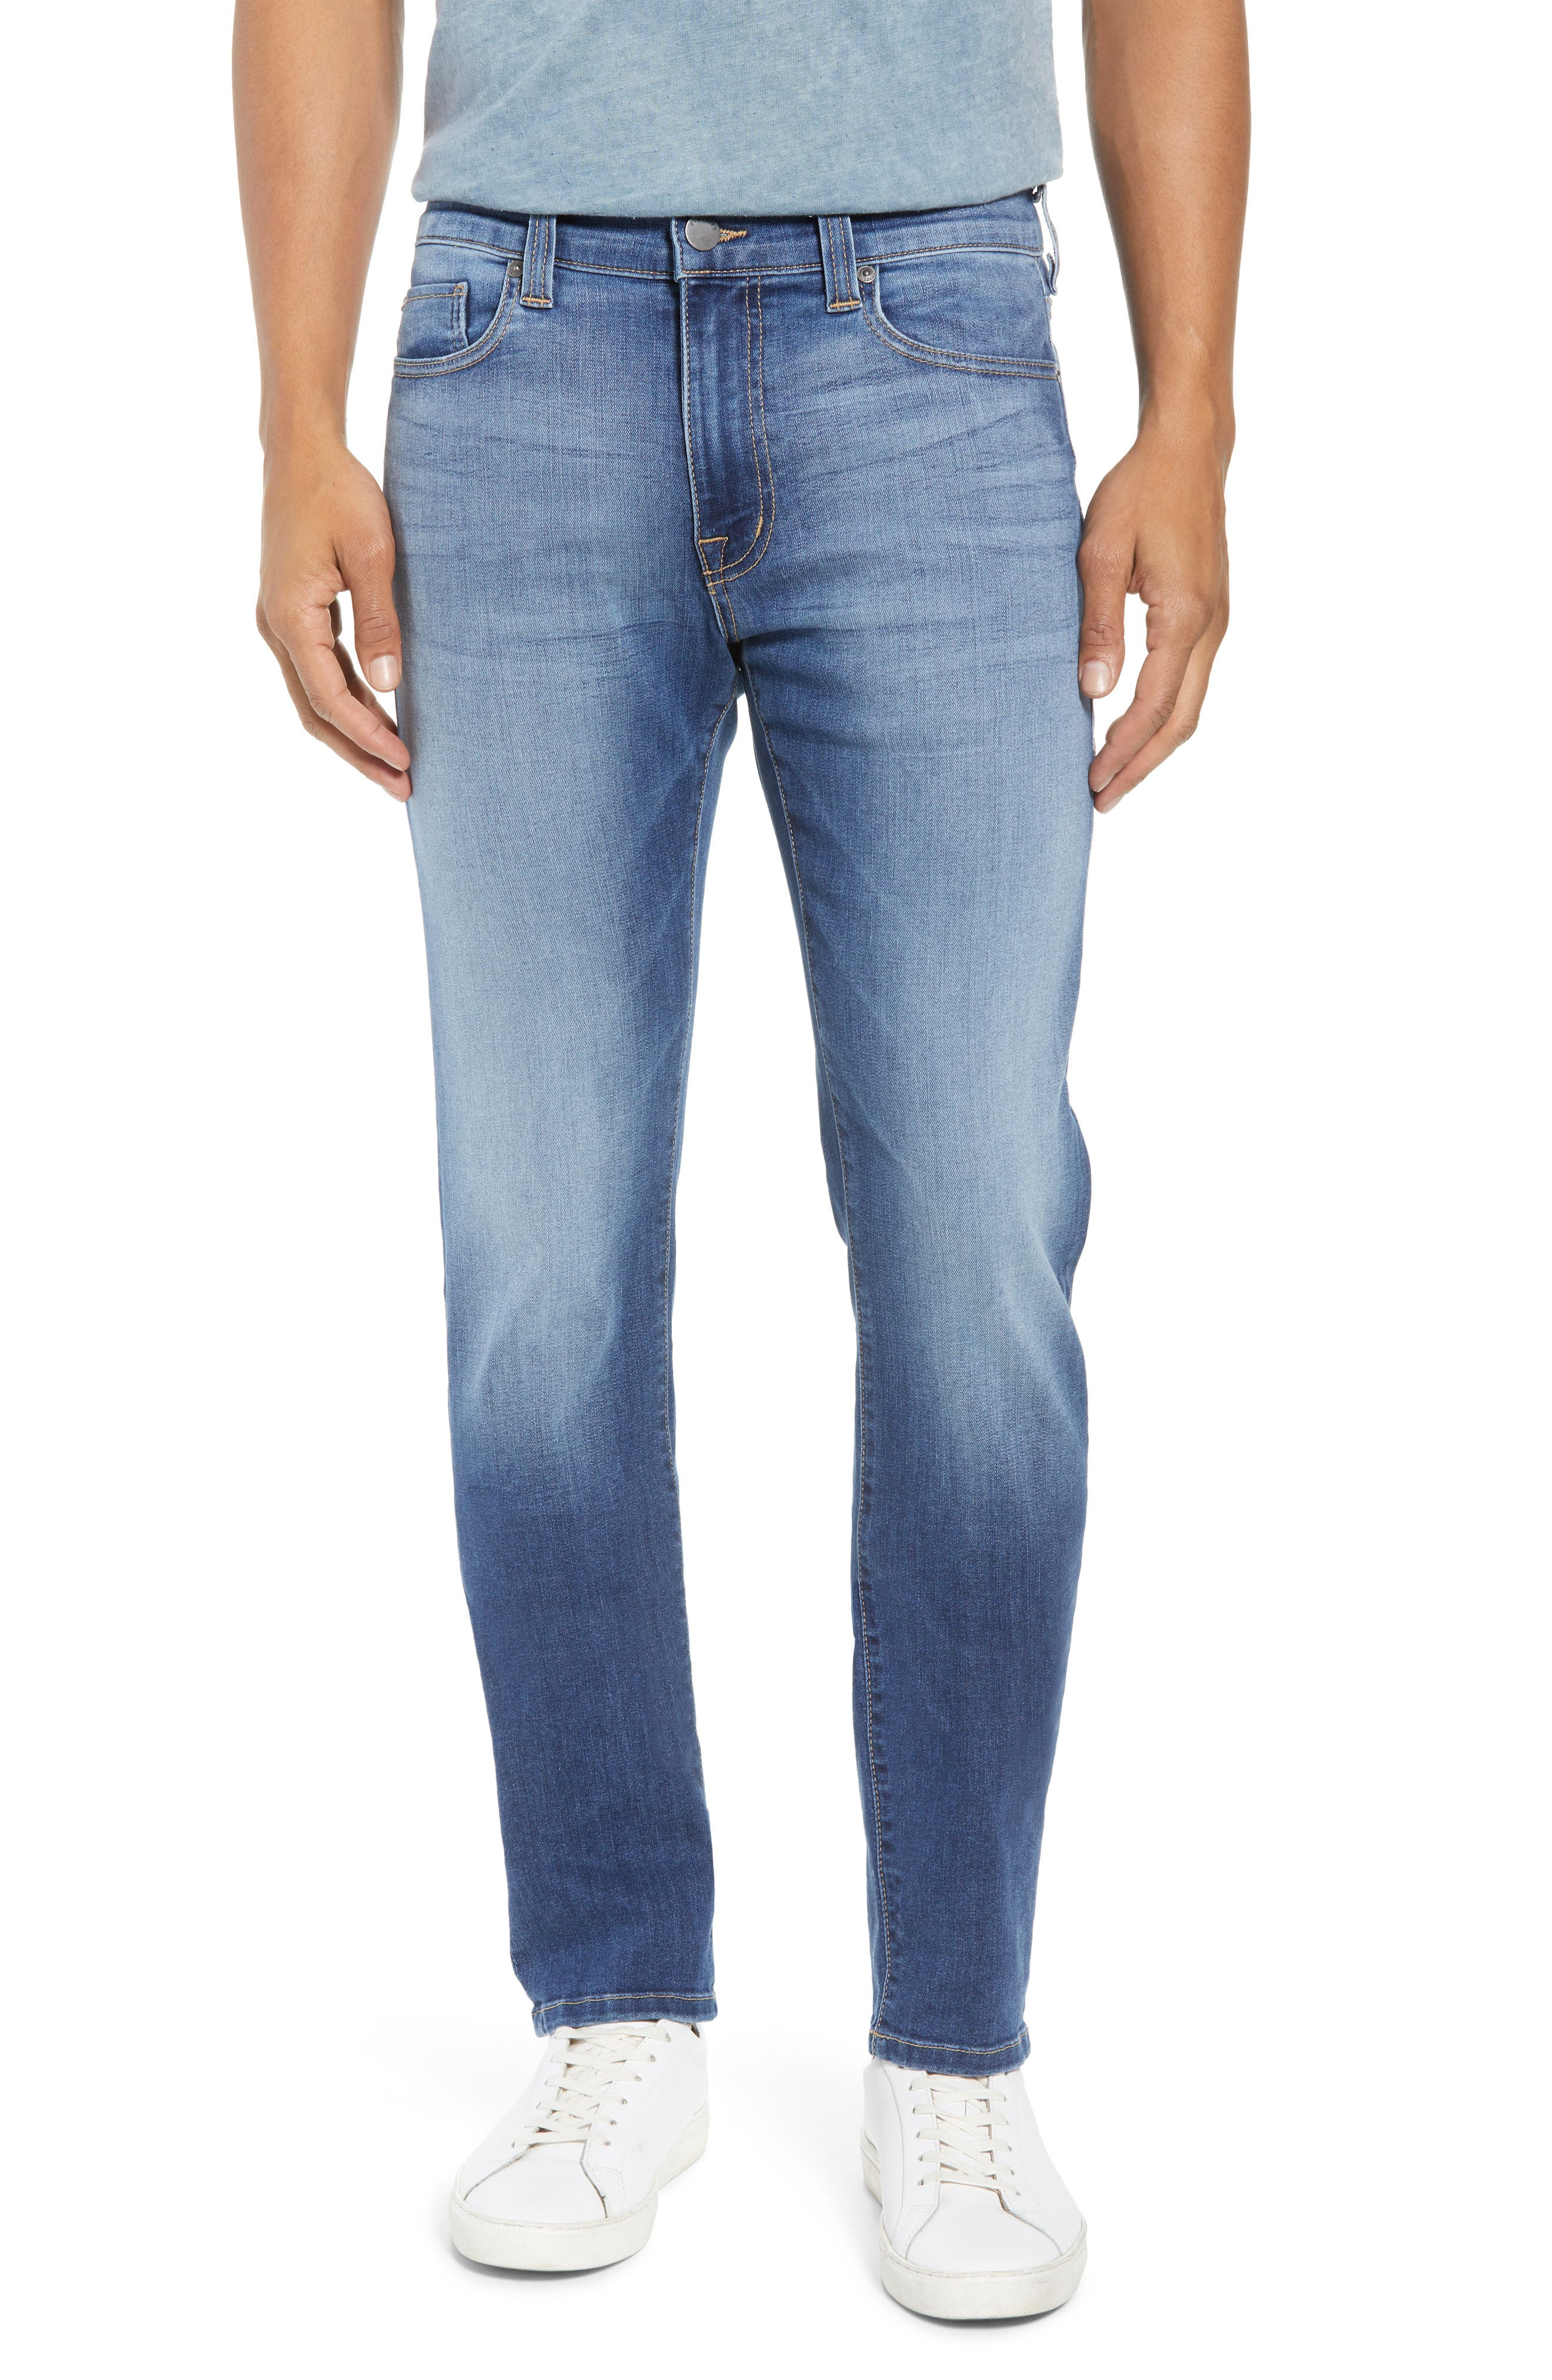 Fidelity Denim Torino Slim Fit Jeans (Elysium Blue)